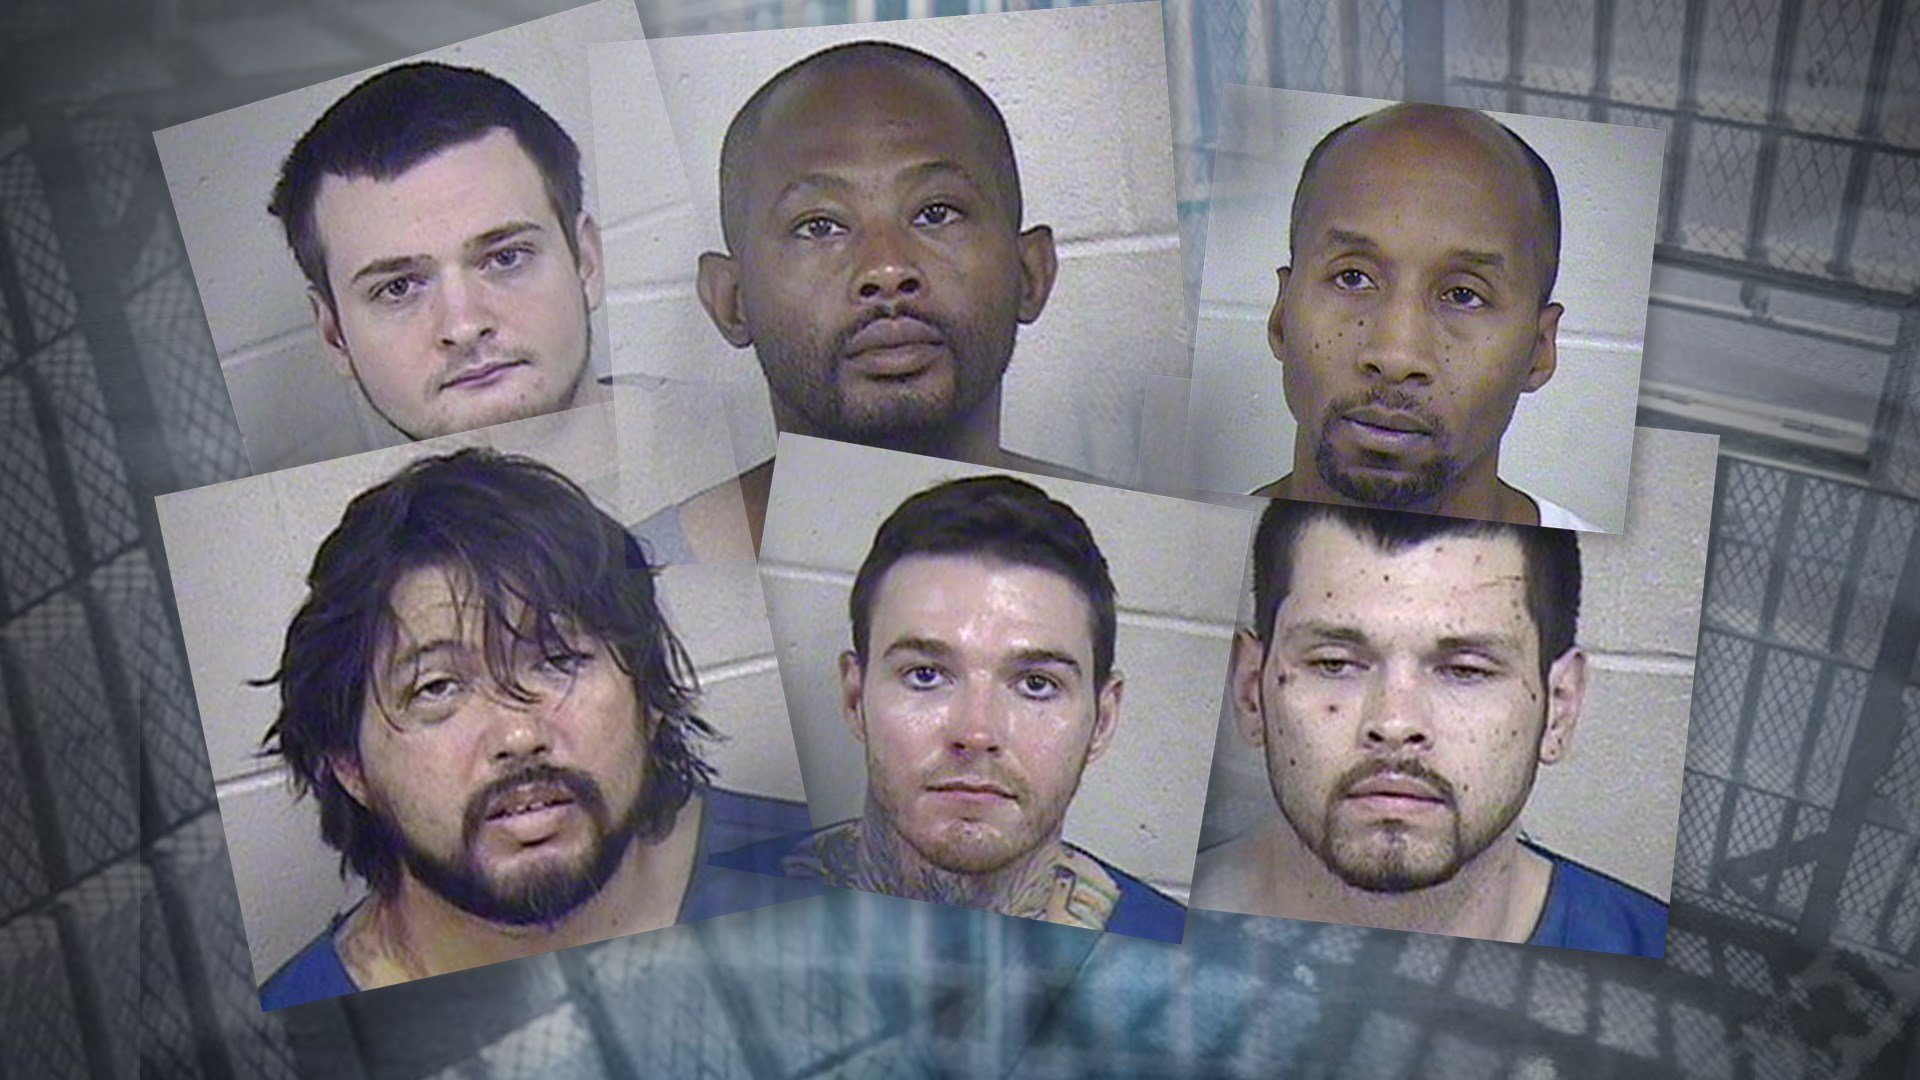 The handwritten lawsuit says life inside the Jackson County Jail is pretty gross. The six men who filed the lawsuit say sheets haven't been washed in more than six months. (KCTV5)